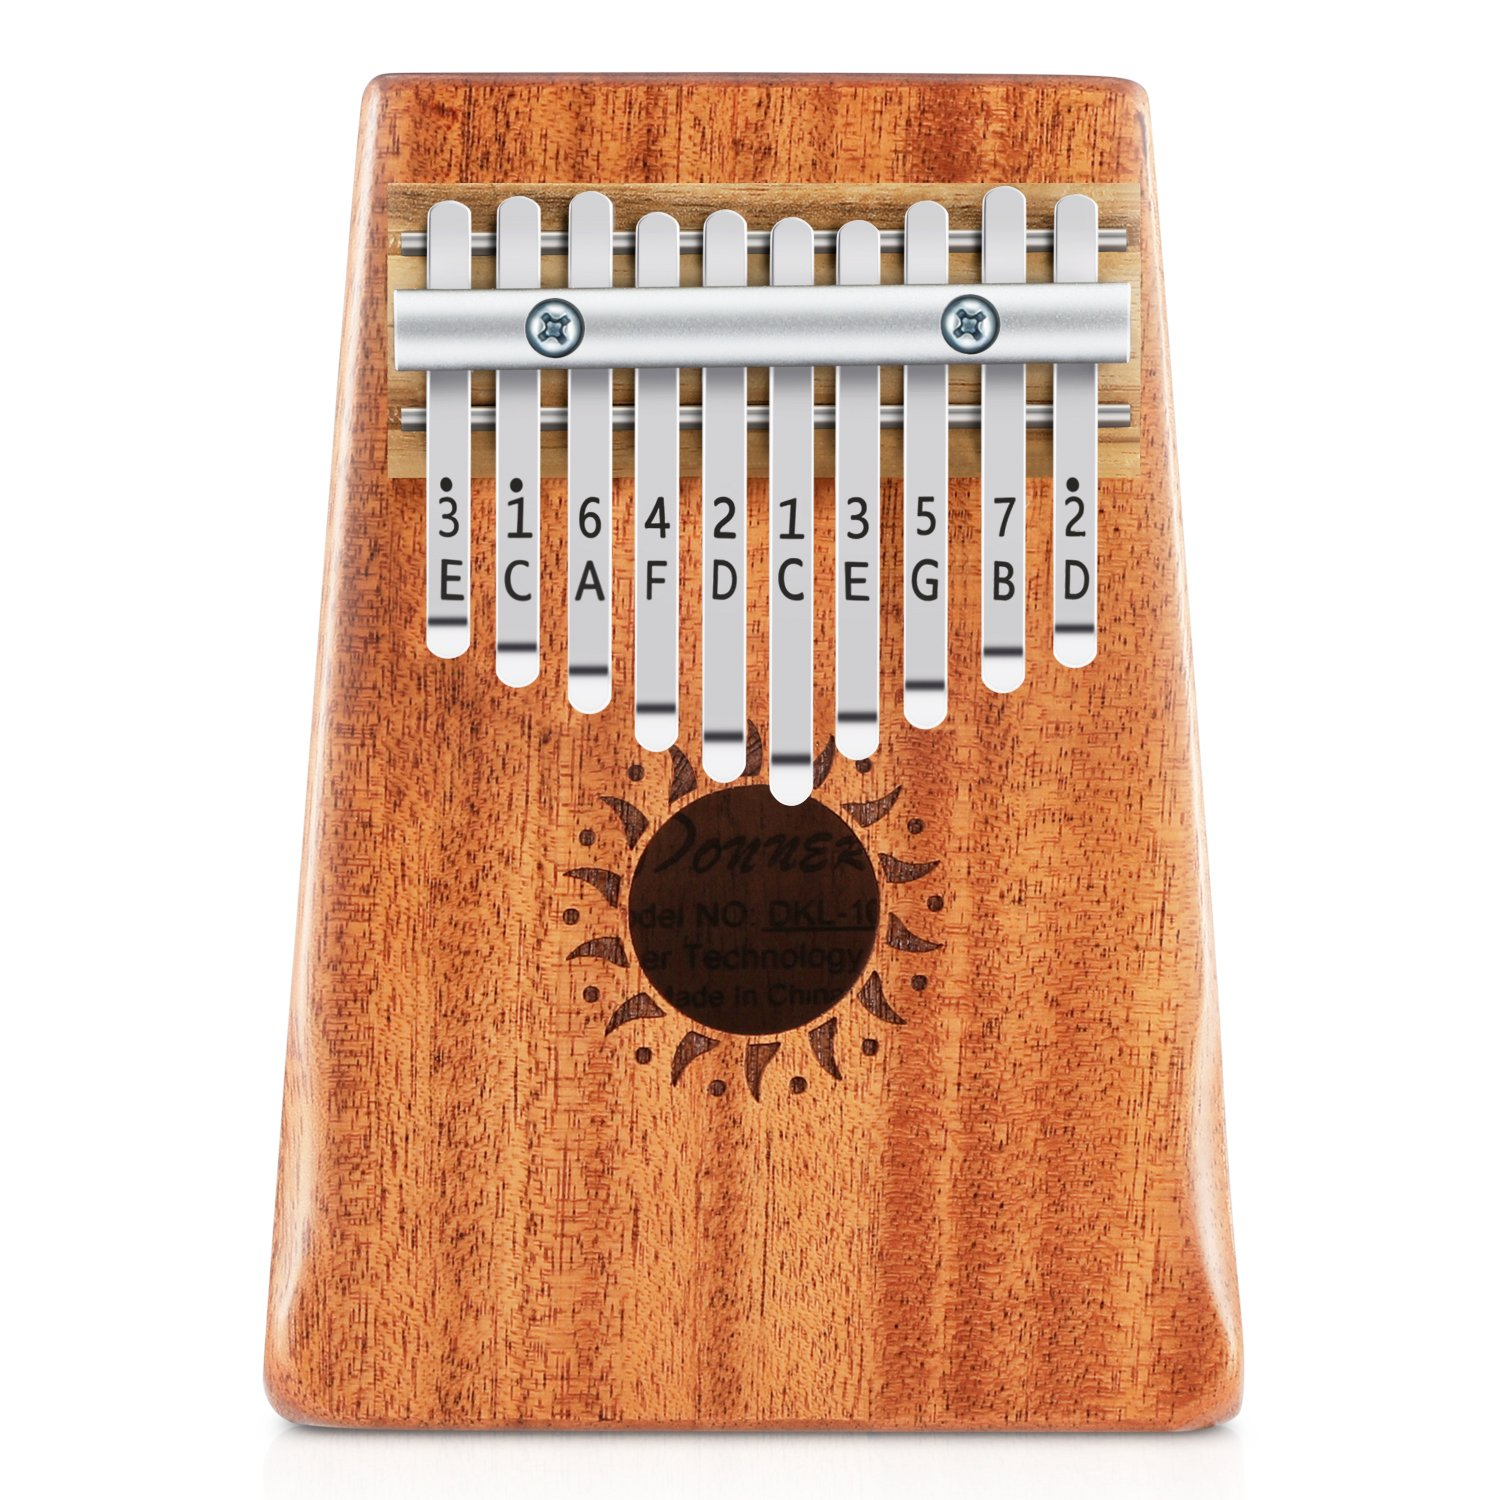 Donner 10 Key Kalimba Thumb Piano Solid Finger Piano Mahogany Body DKL-10 by Donner (Image #3)